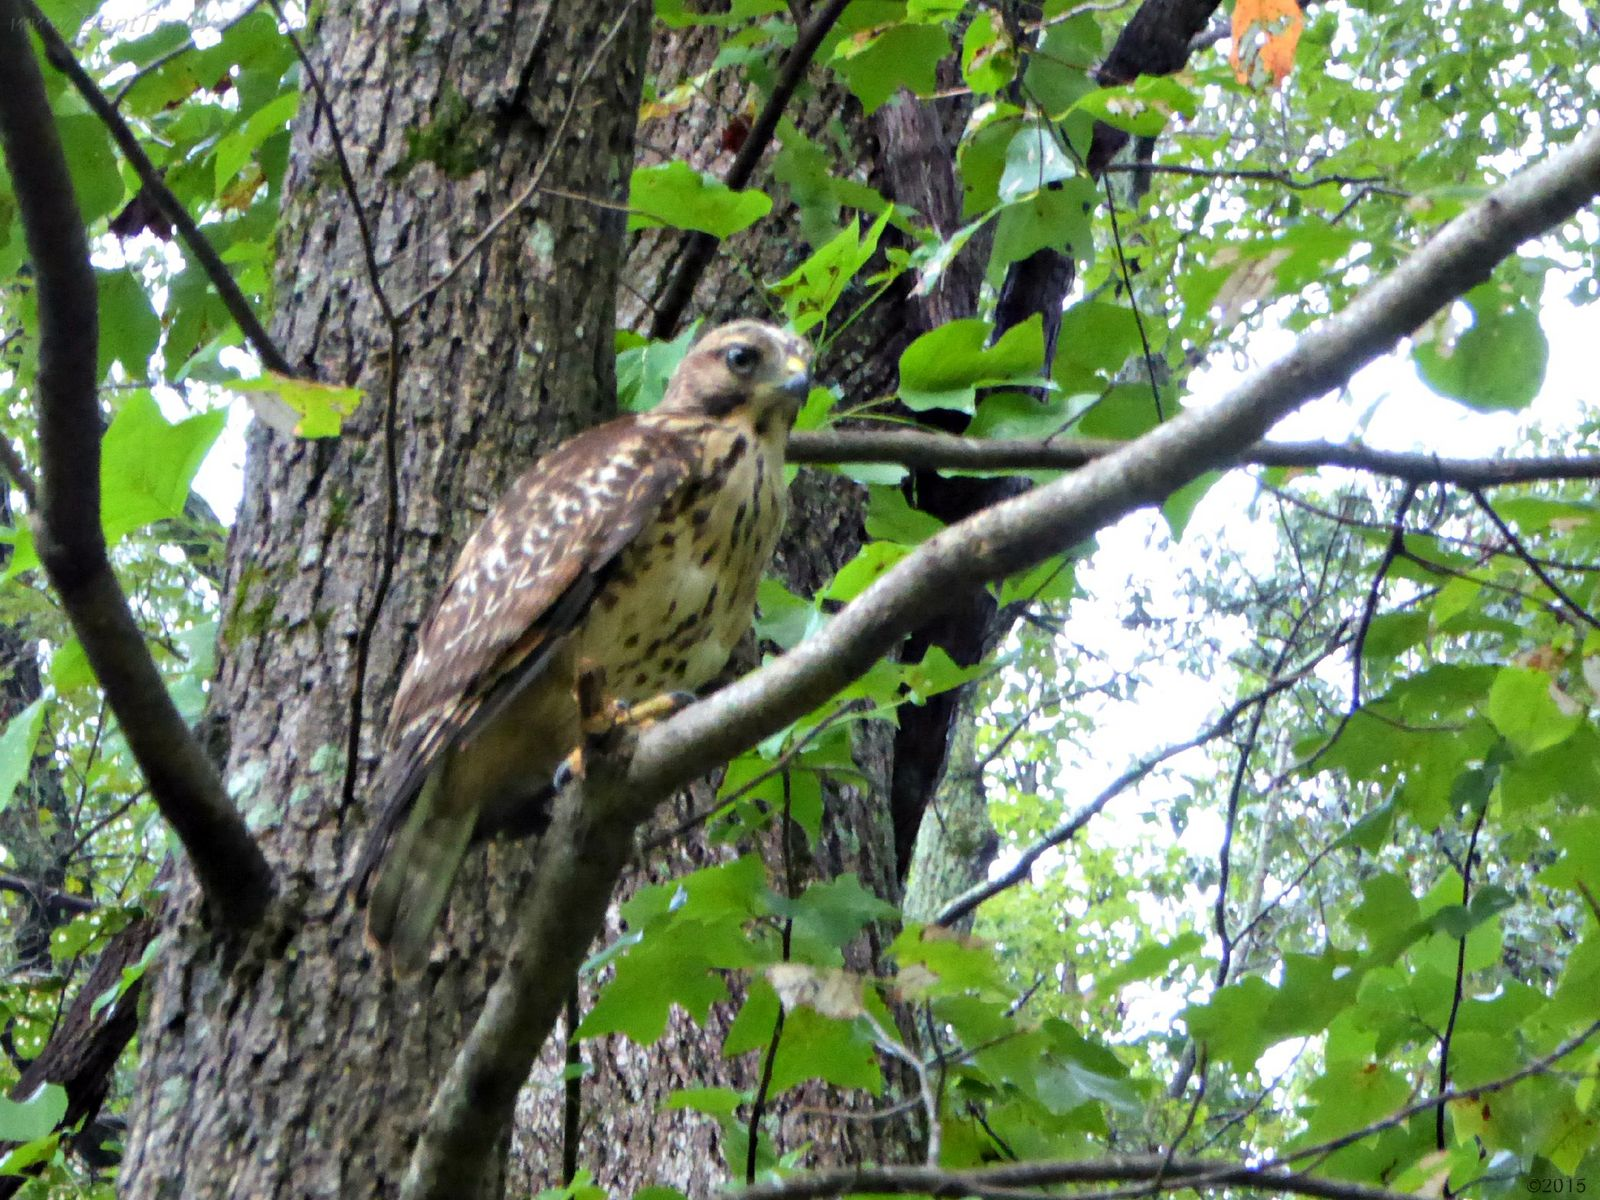 August 18, 2015 - Hawk in Bent Tree